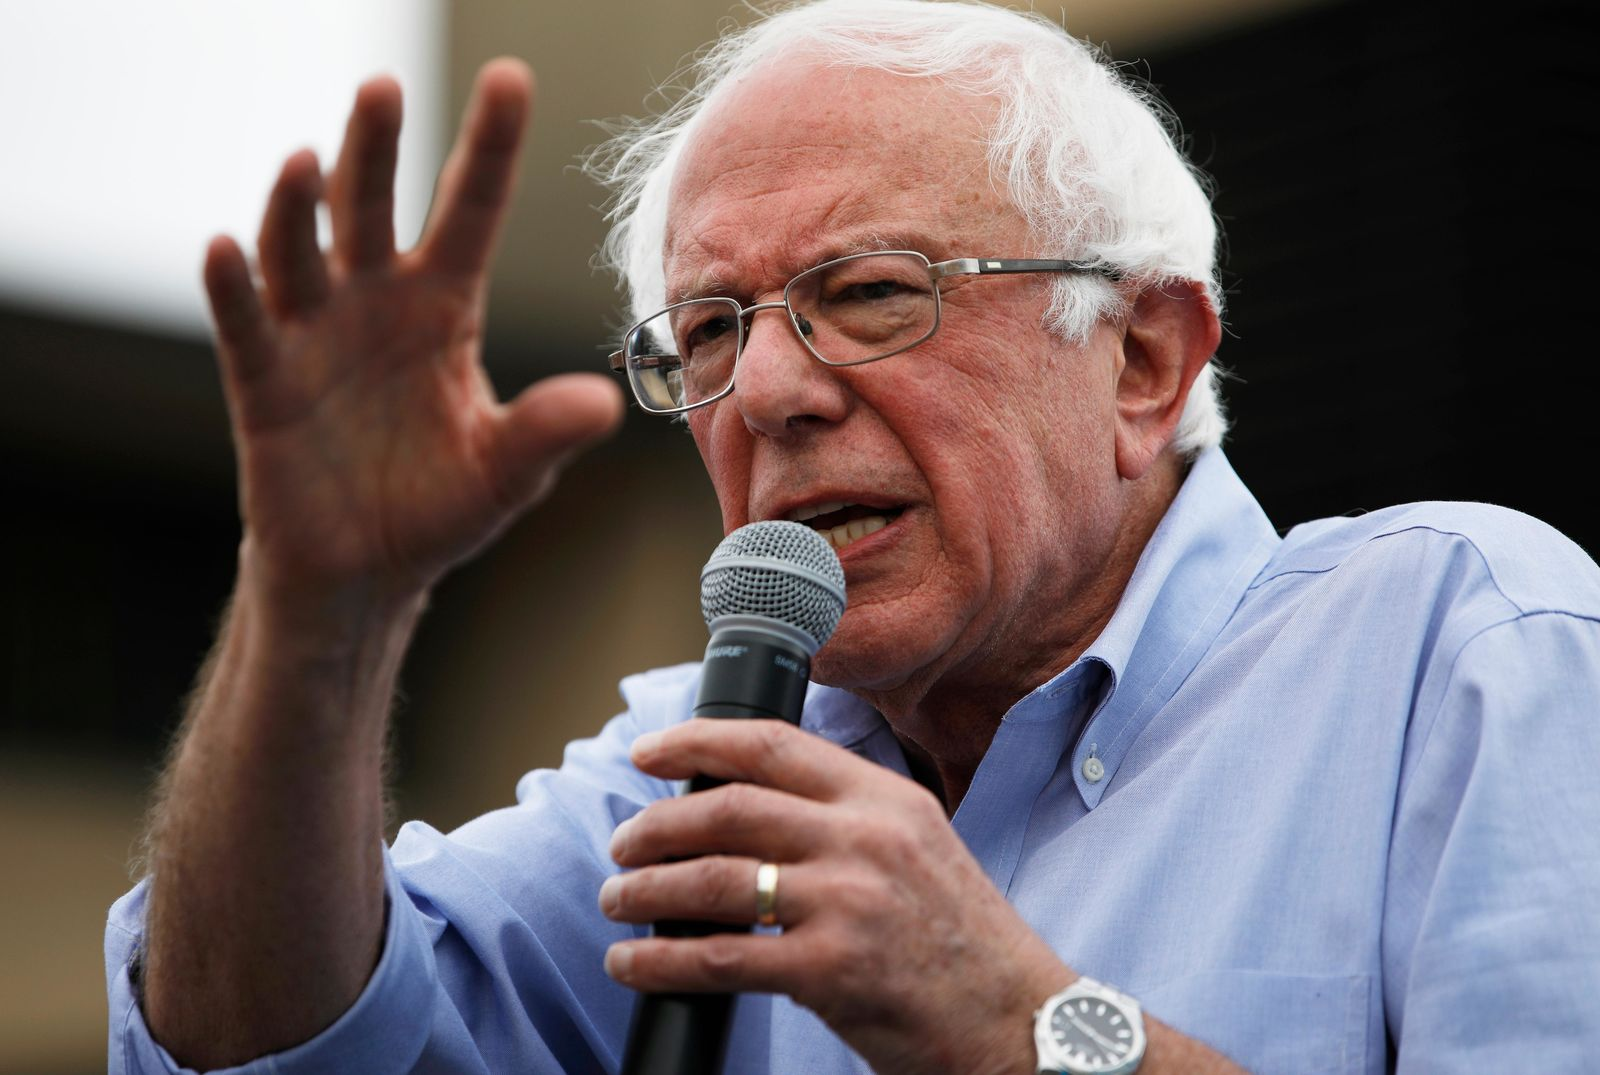 FILE - In this Aug. 11, 2019, file photo, Democratic presidential candidate Sen. Bernie Sanders, I-Vt., speaks at the Iowa State Fair in Des Moines, Iowa. (AP Photo/John Locher, File)